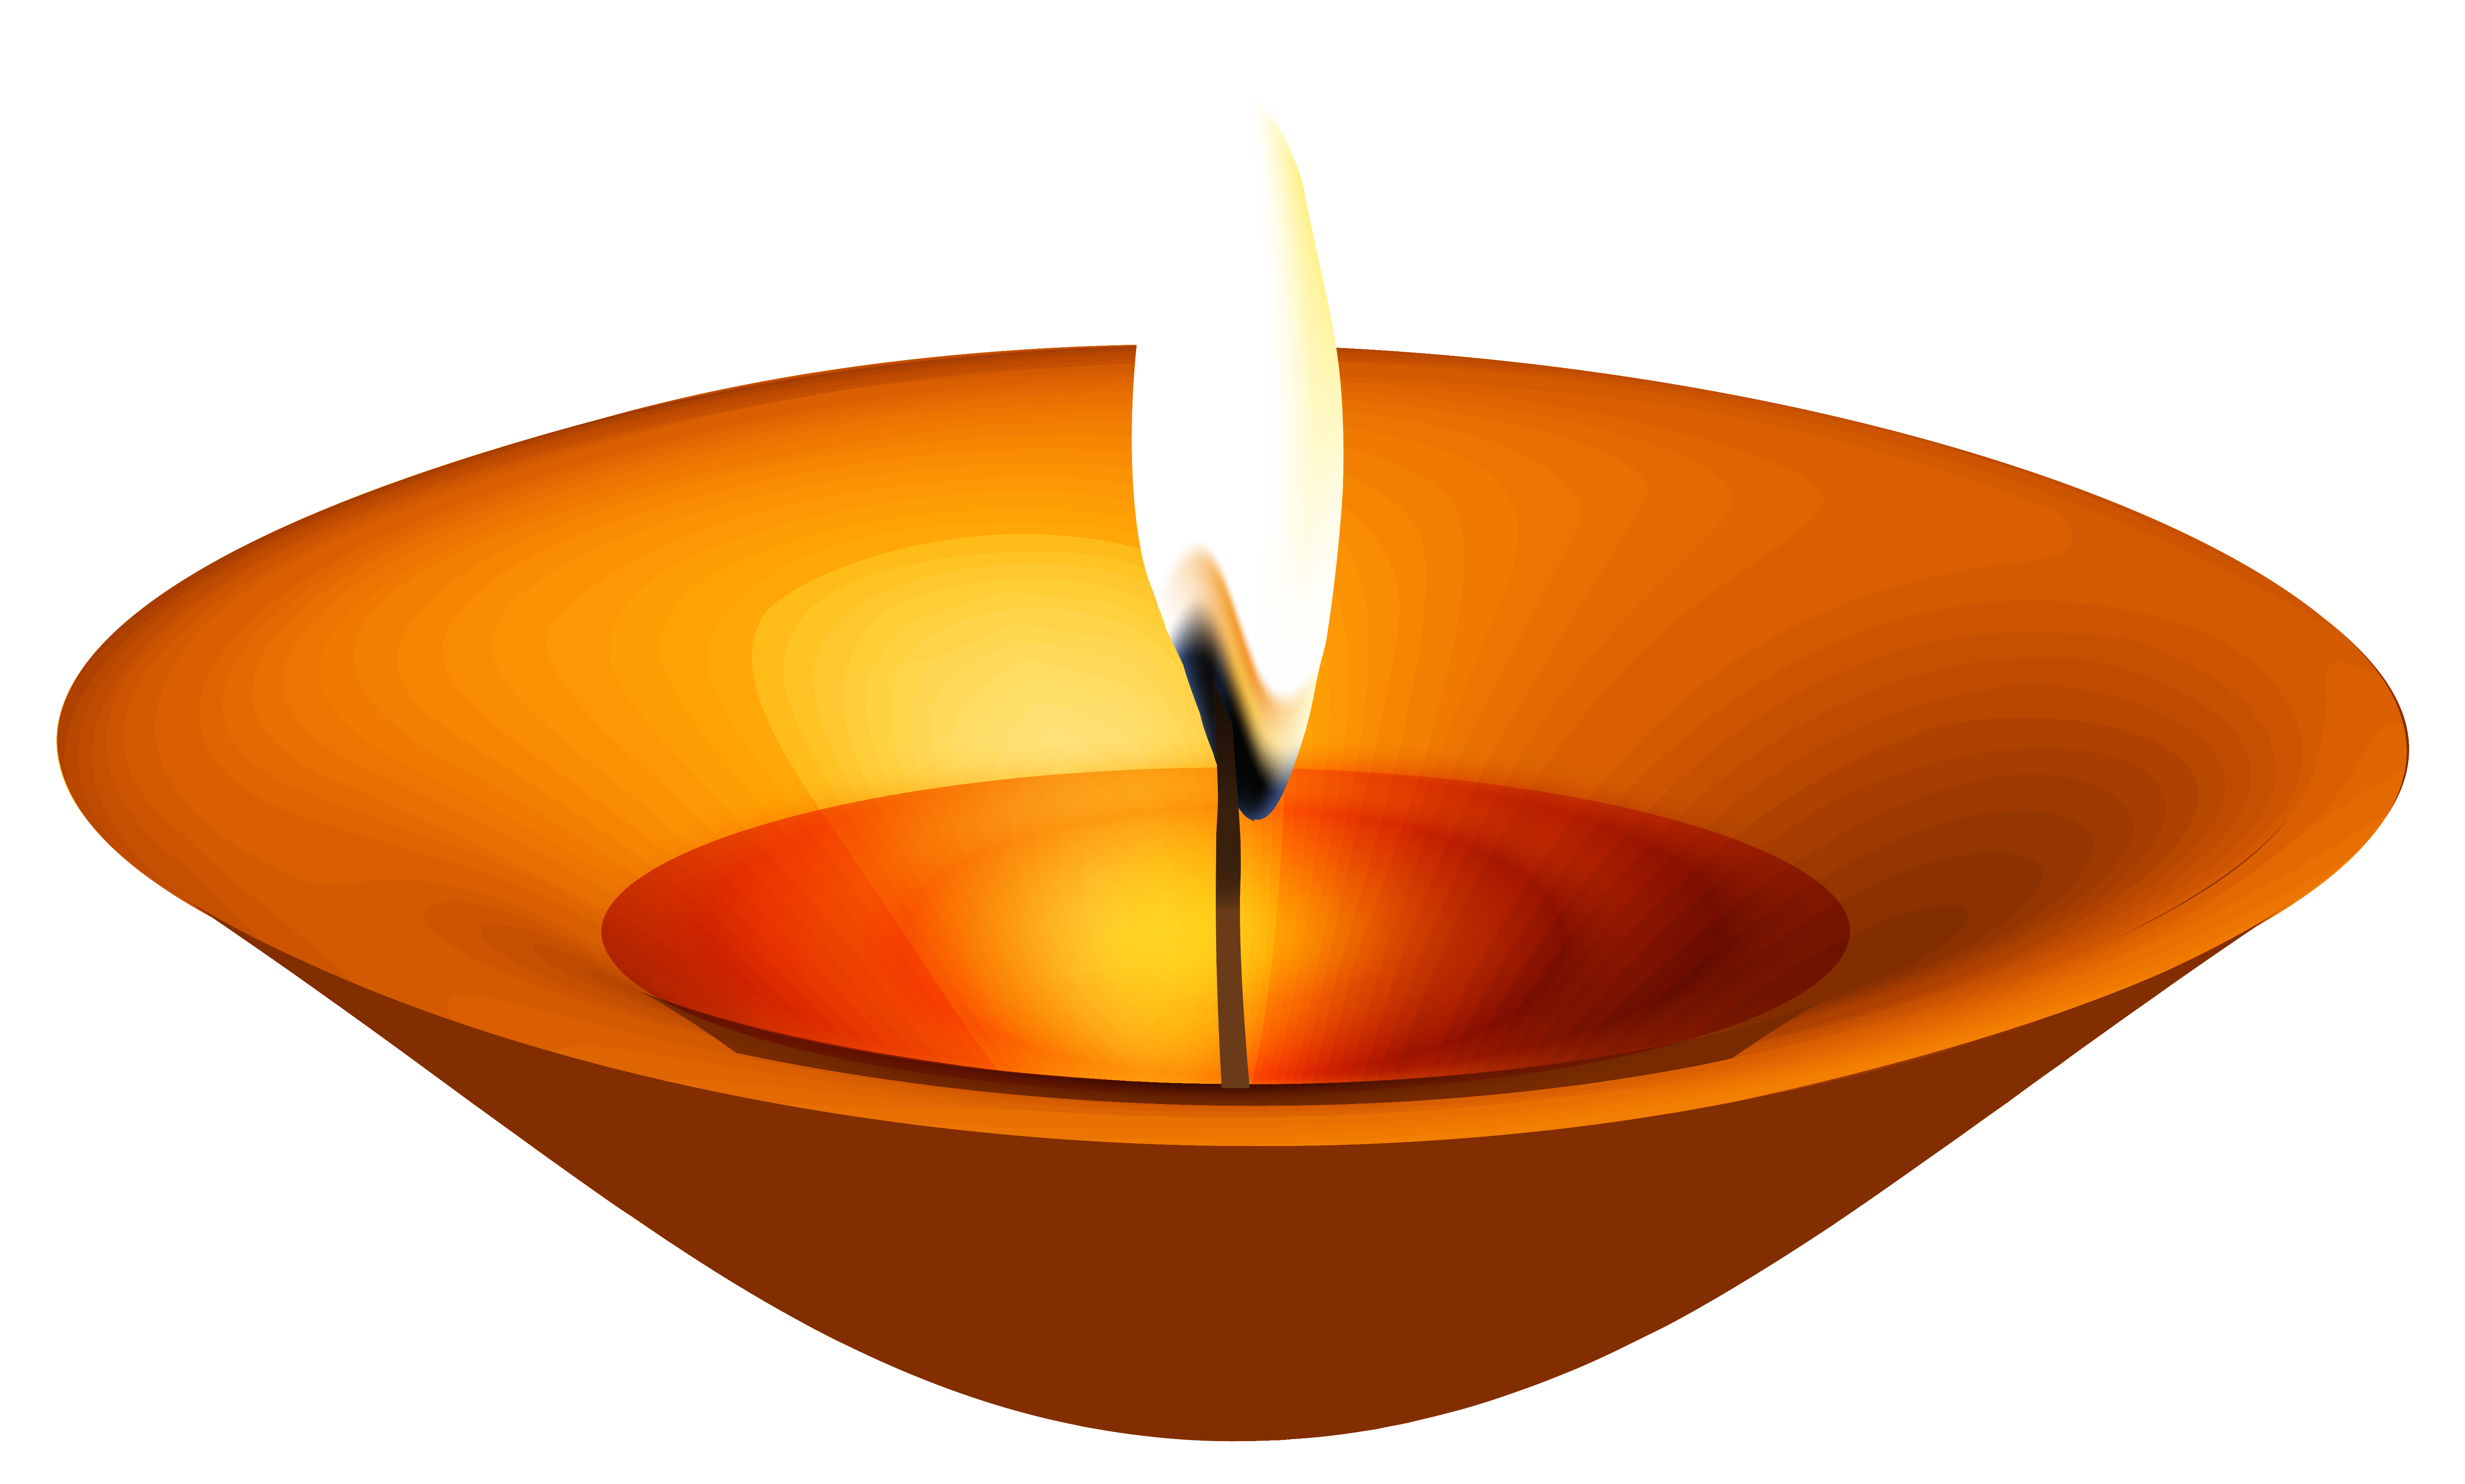 Gift clipart diwali. Candle png image places